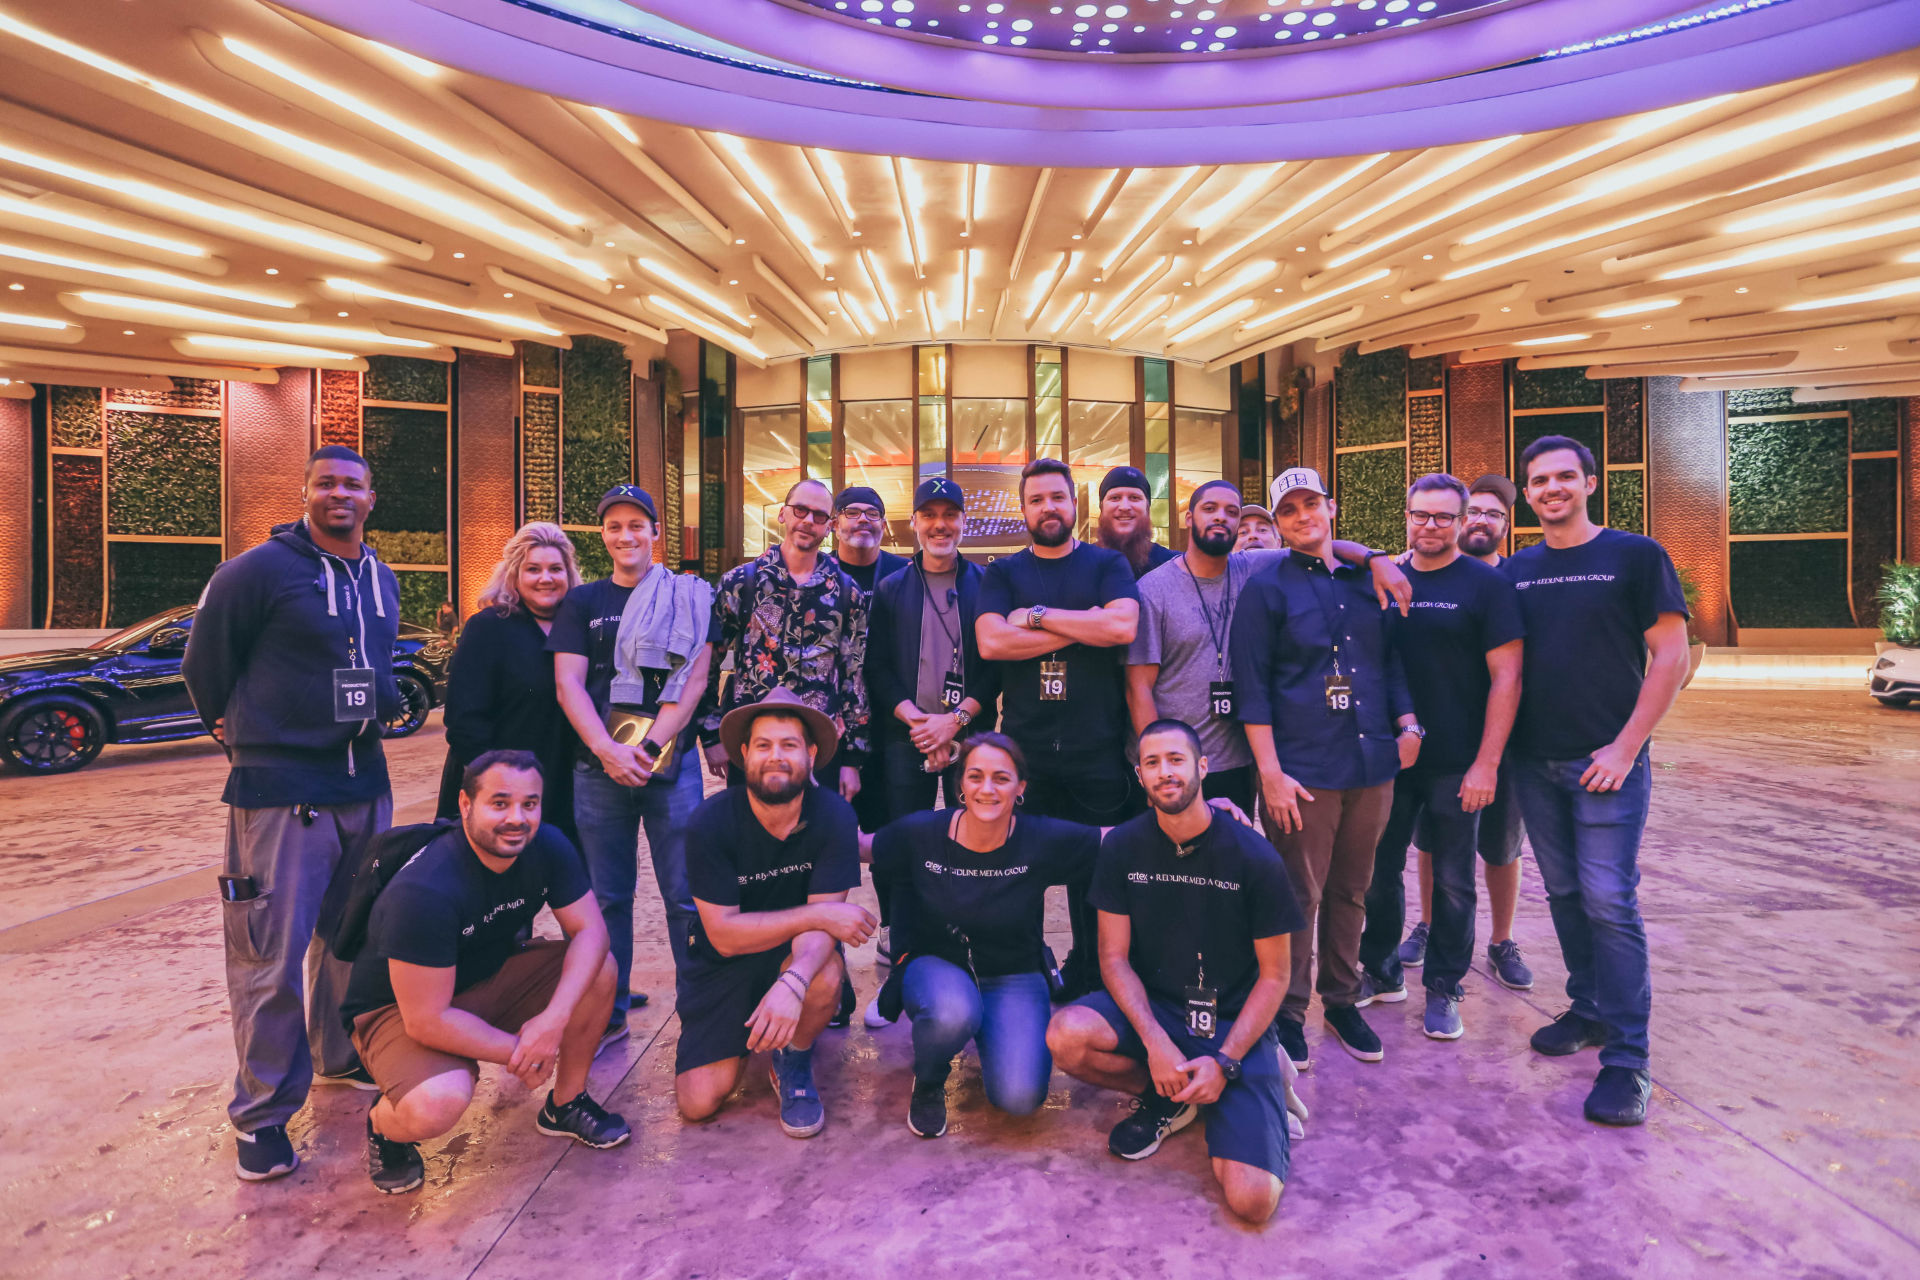 South Florida Seminole Hard Rock Hotel and Casino - Artex Productions - Best Commercial Video Production Team in Miami